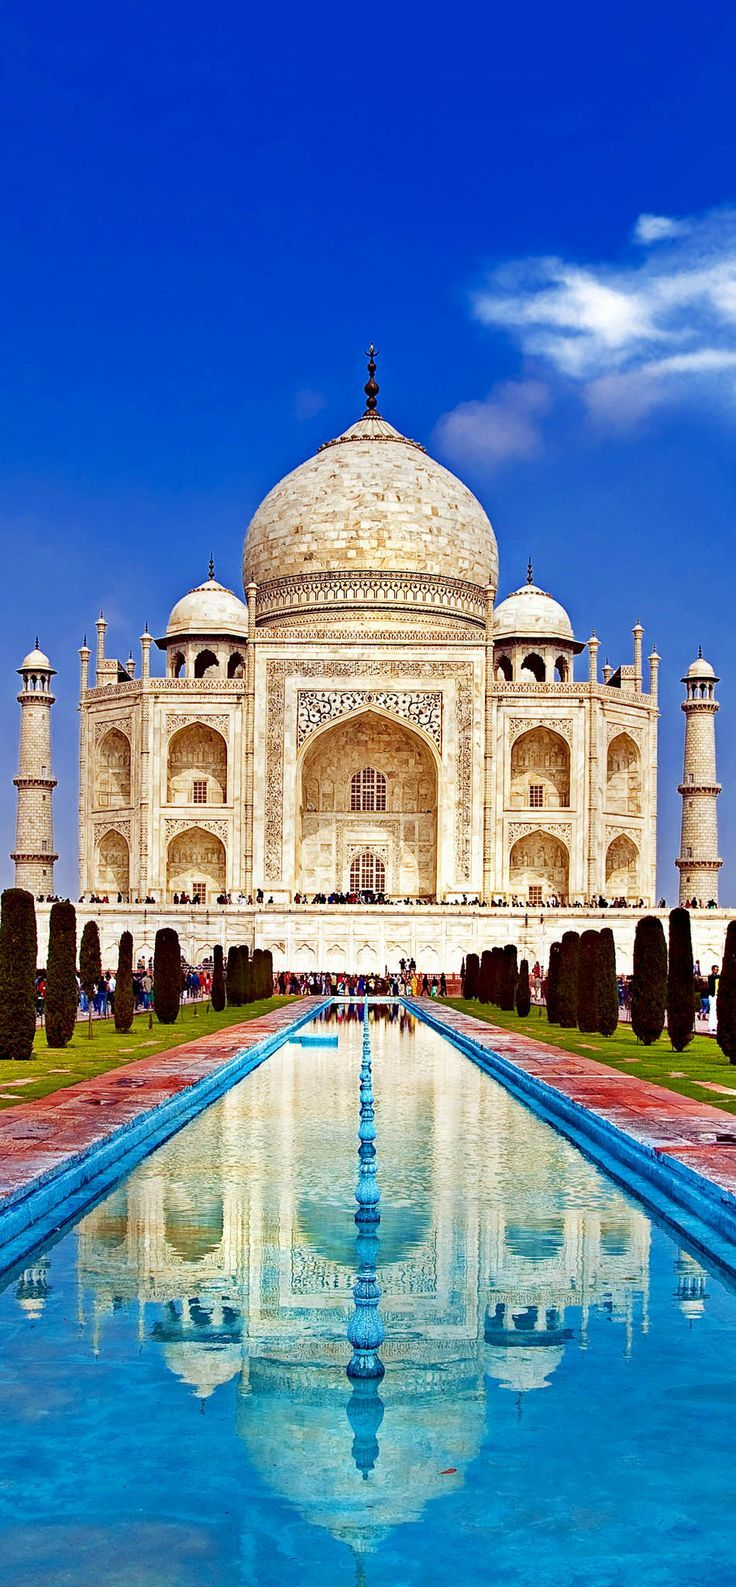 The Taj Mahal, India's architectural crown jewel is one of the seven wonders of the world